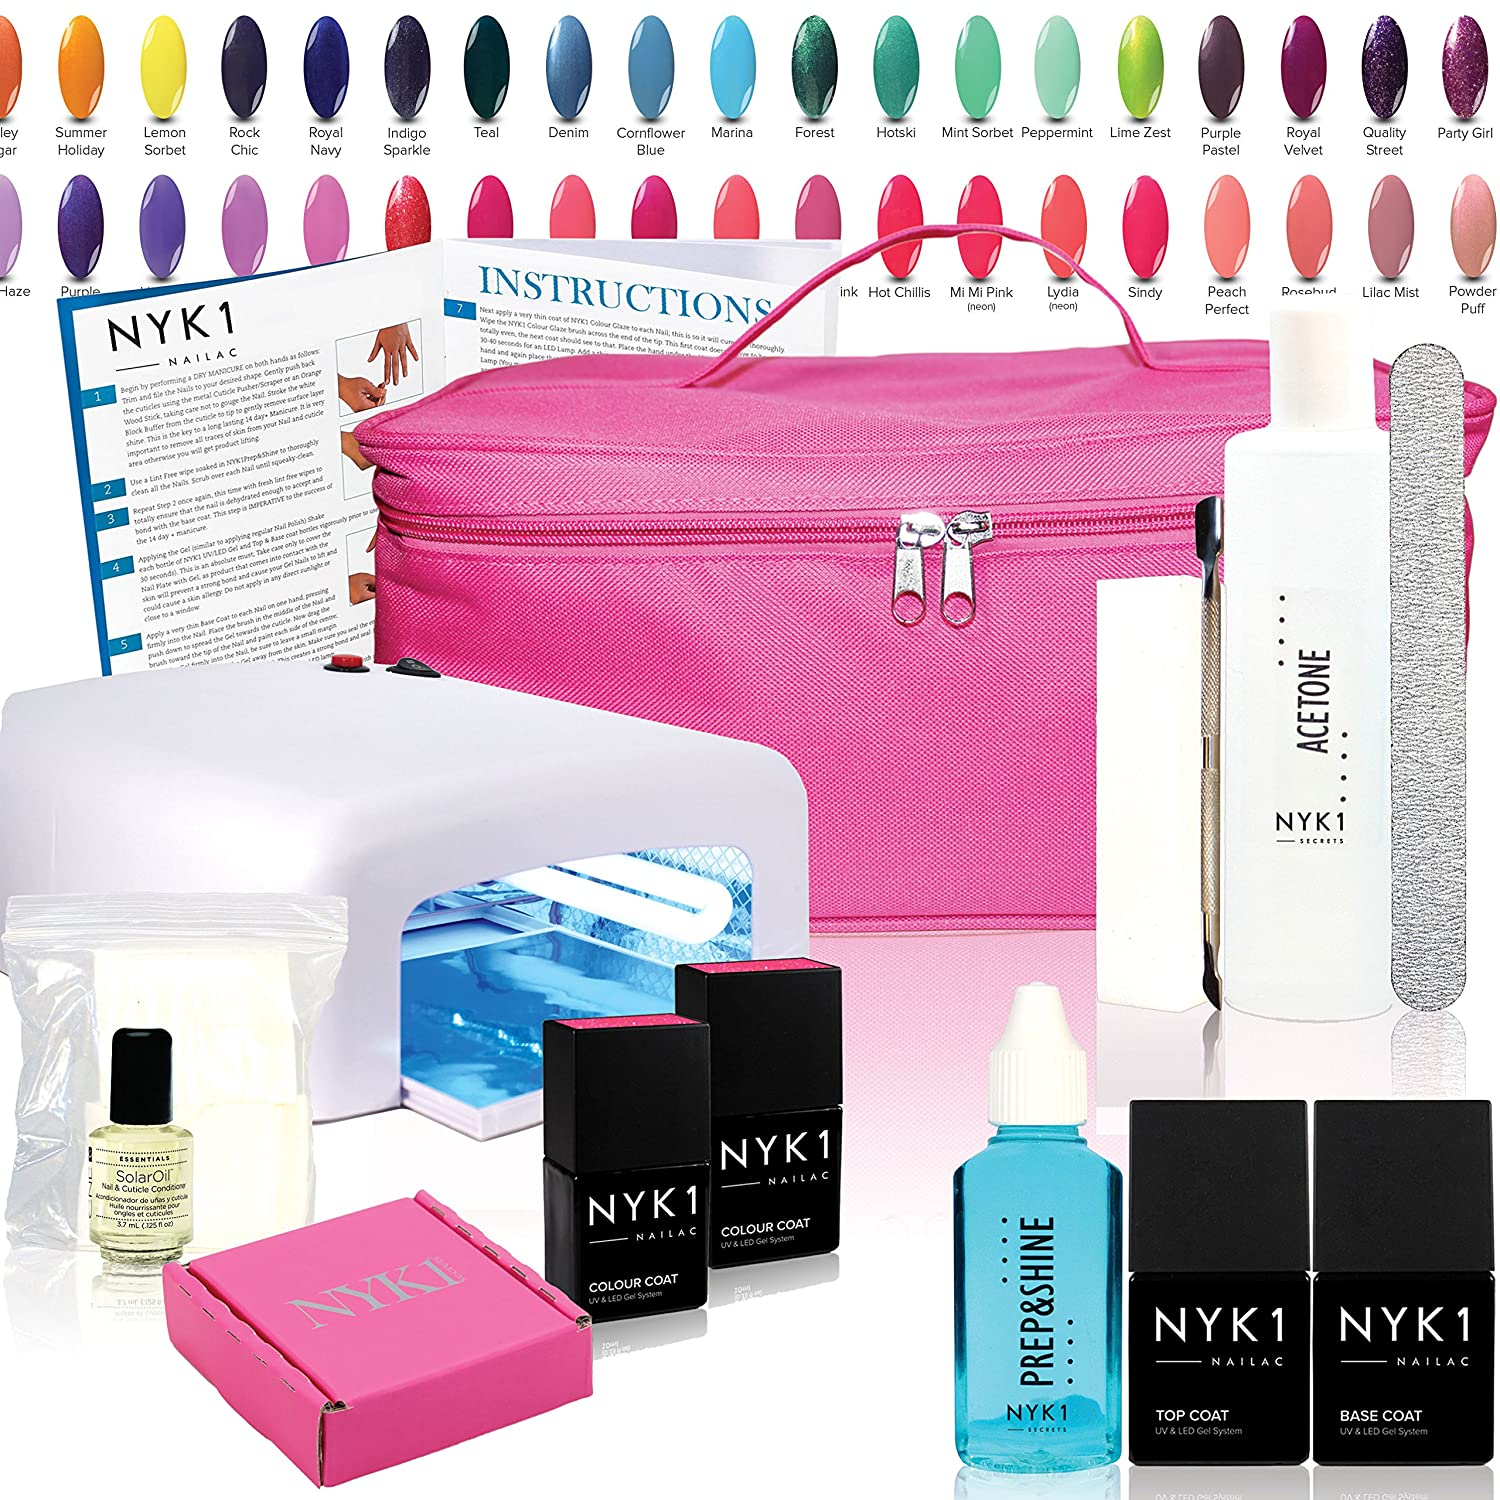 Nyk1 uv essentials 2 colour nailac gel nail polish kit choose nyk1 uv essentials 2 colour nailac gel nail polish kit choose your colours full uv gel nail starter kit with acetone remover top coat base coat solutioingenieria Choice Image